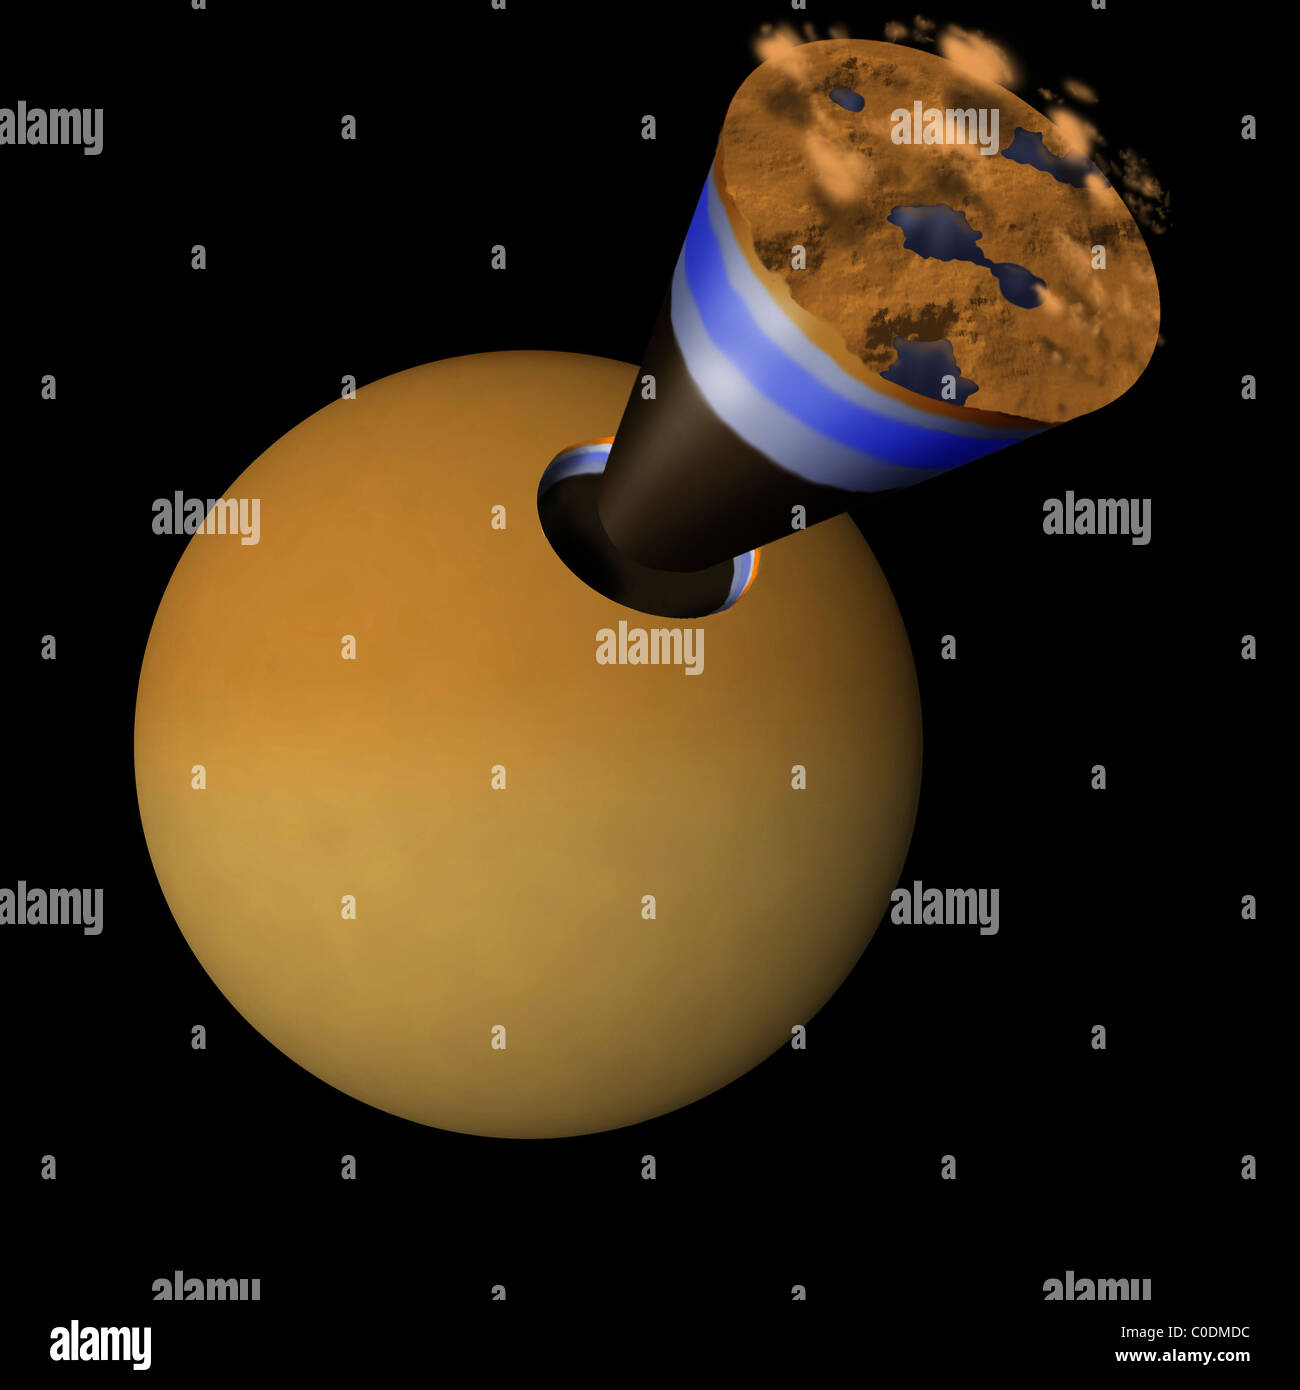 A schematic showing the layers of Titan: an icy crust beneath which may lie liquid water and a solid core. Stock Photo